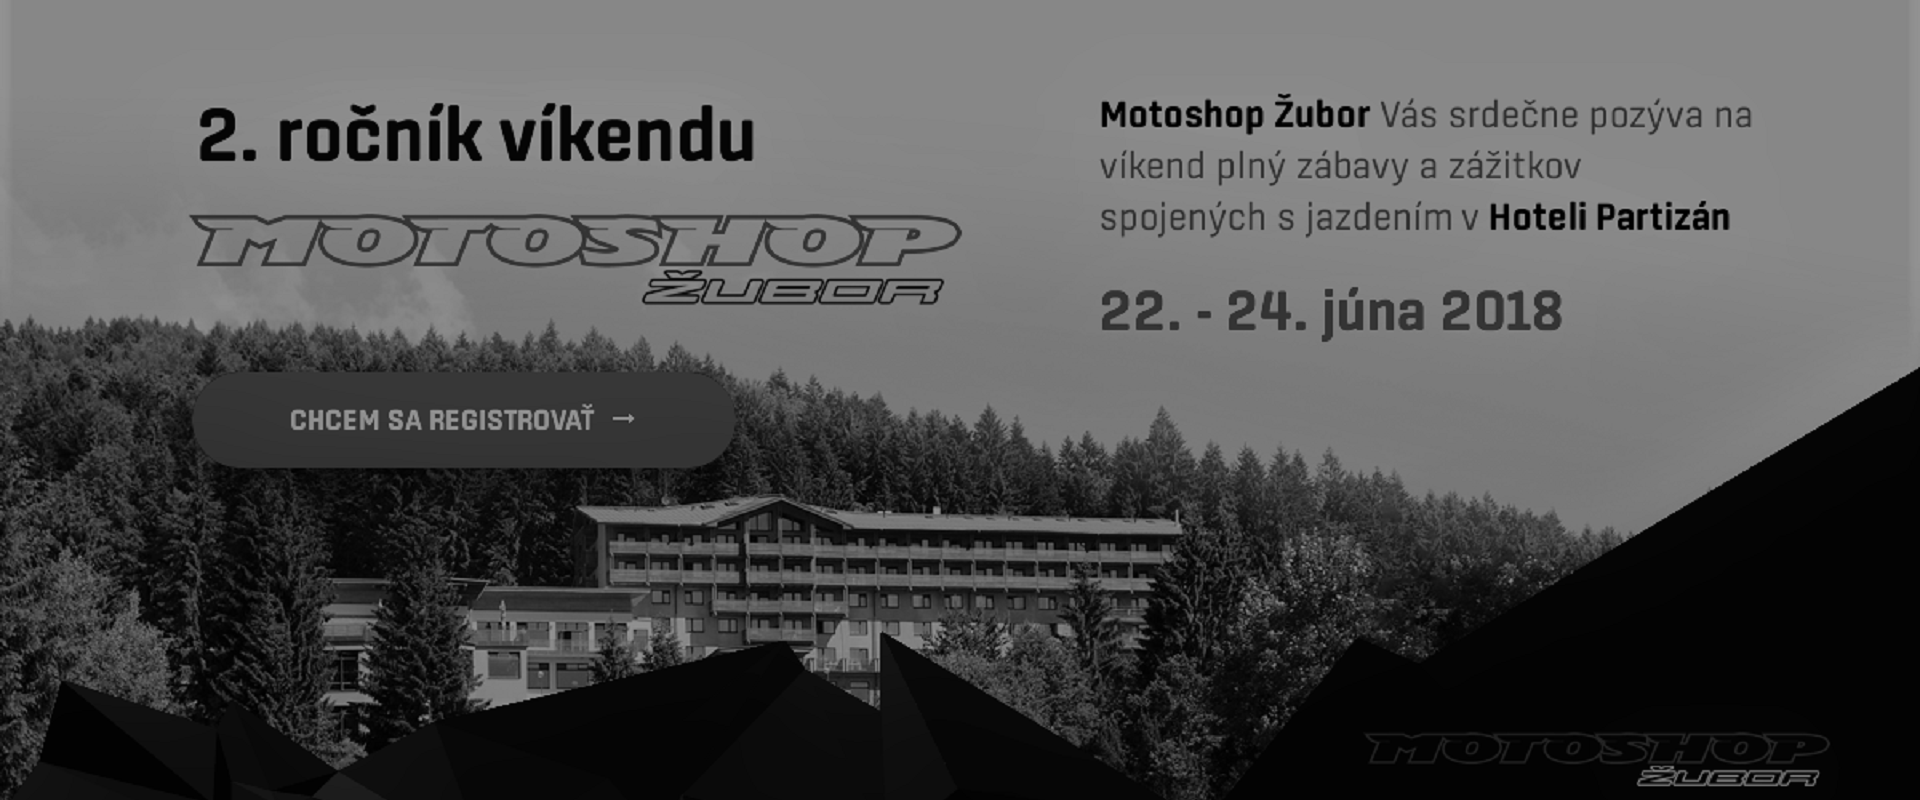 Víkend s Motoshop Žubor